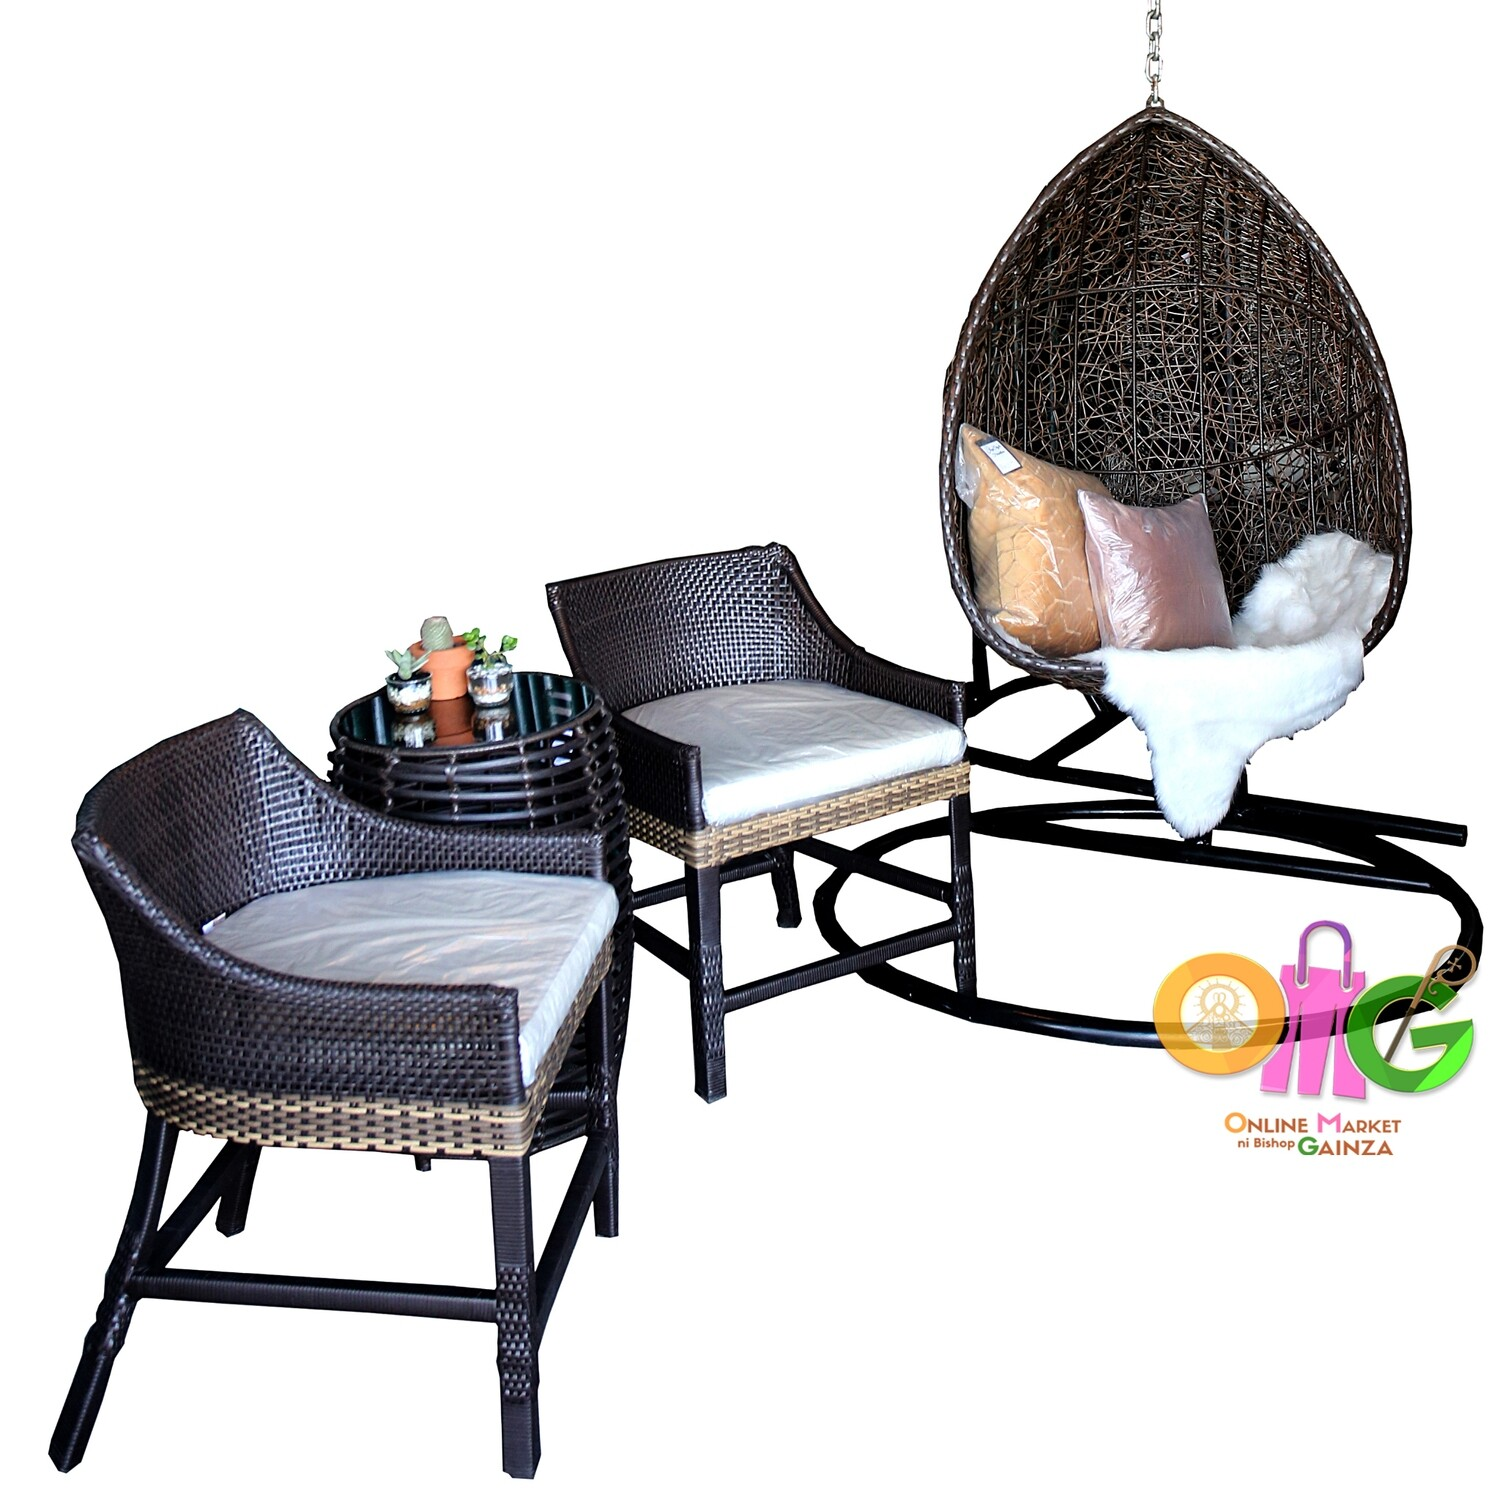 Joystyle Furniture - Lily Set (2 Chairs and a Table) with Swing